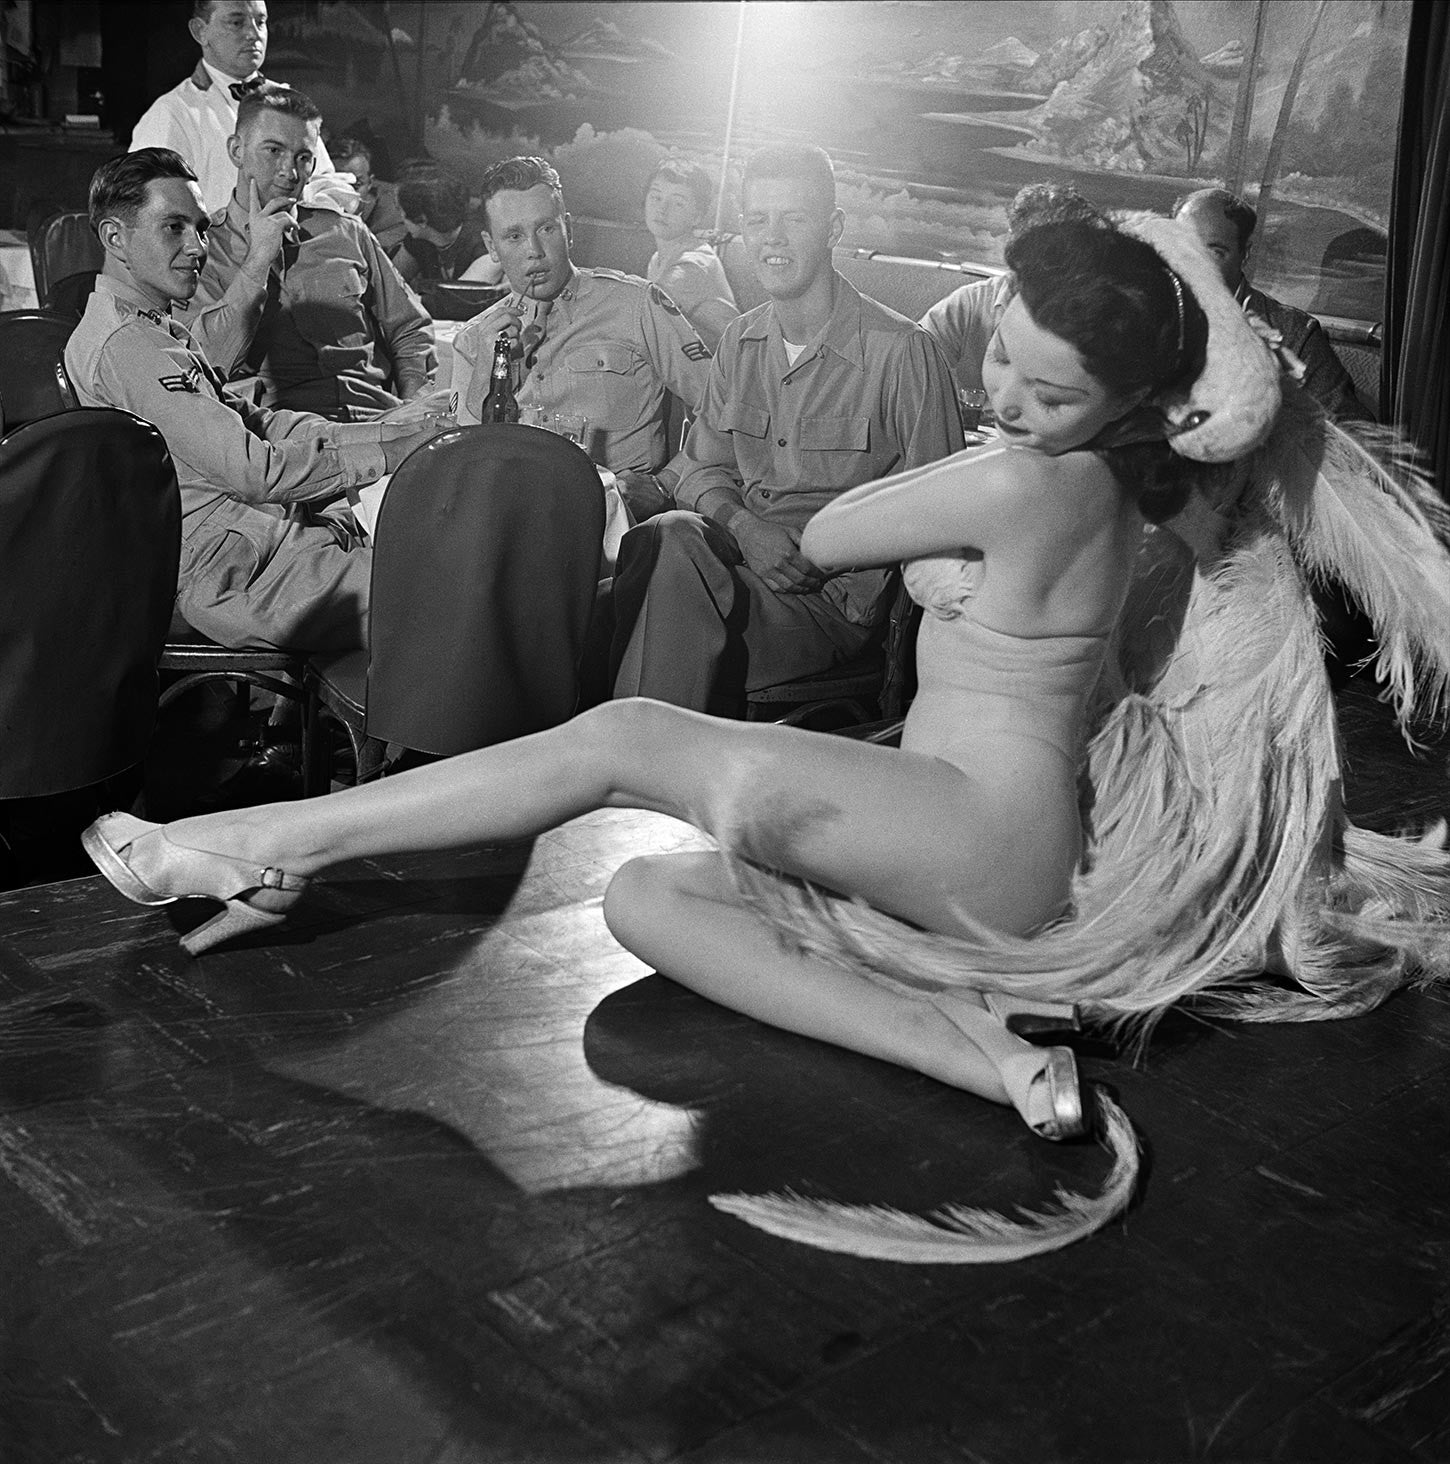 A stripper at Club Samoa. New York City, 1950.